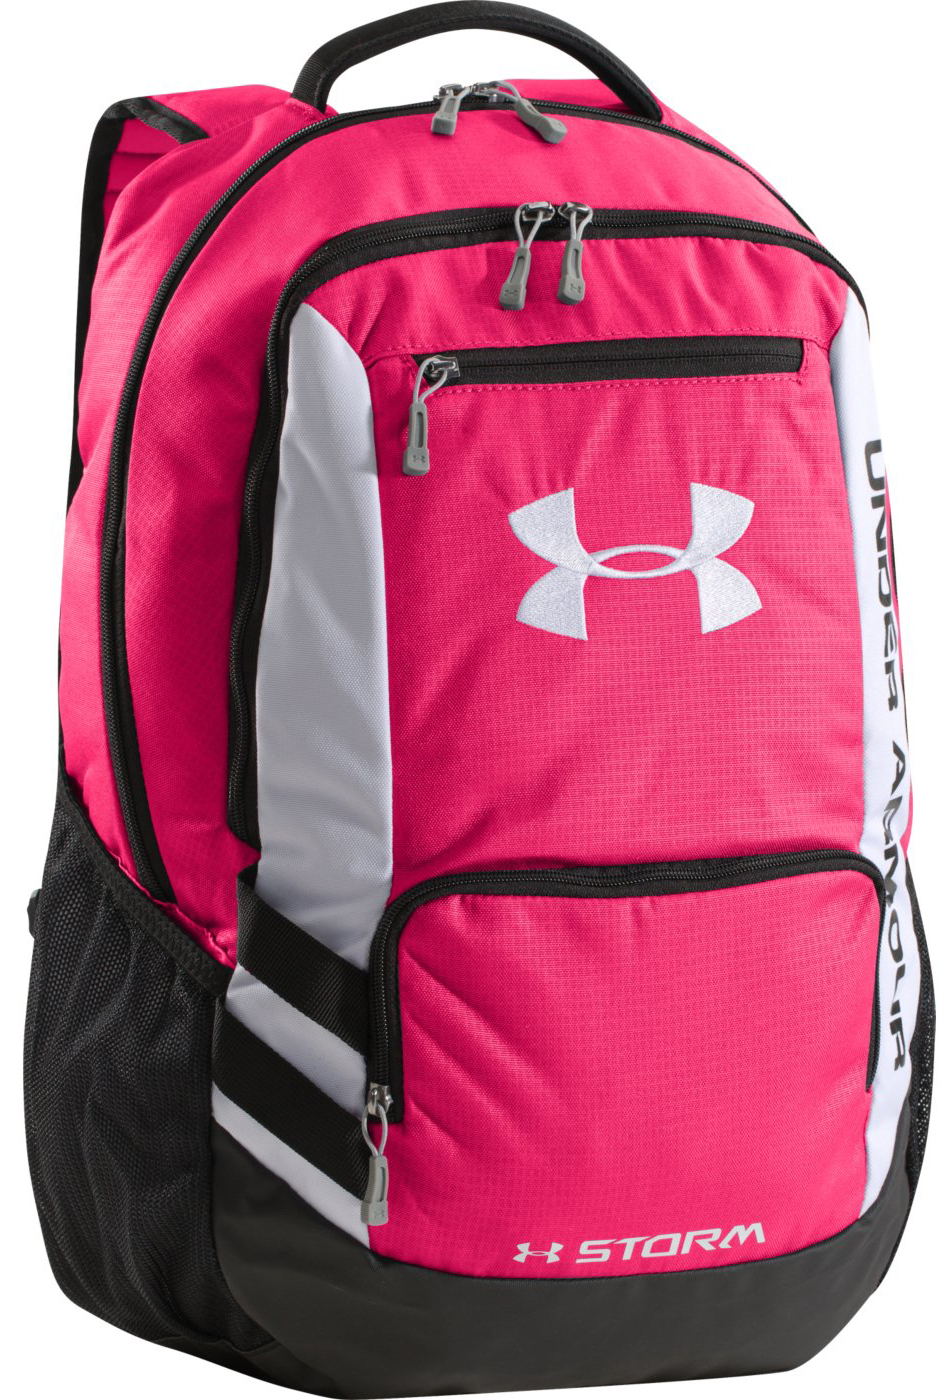 Cheap custom under armour backpacks Buy Online  OFF64% Discounted d3009841dd